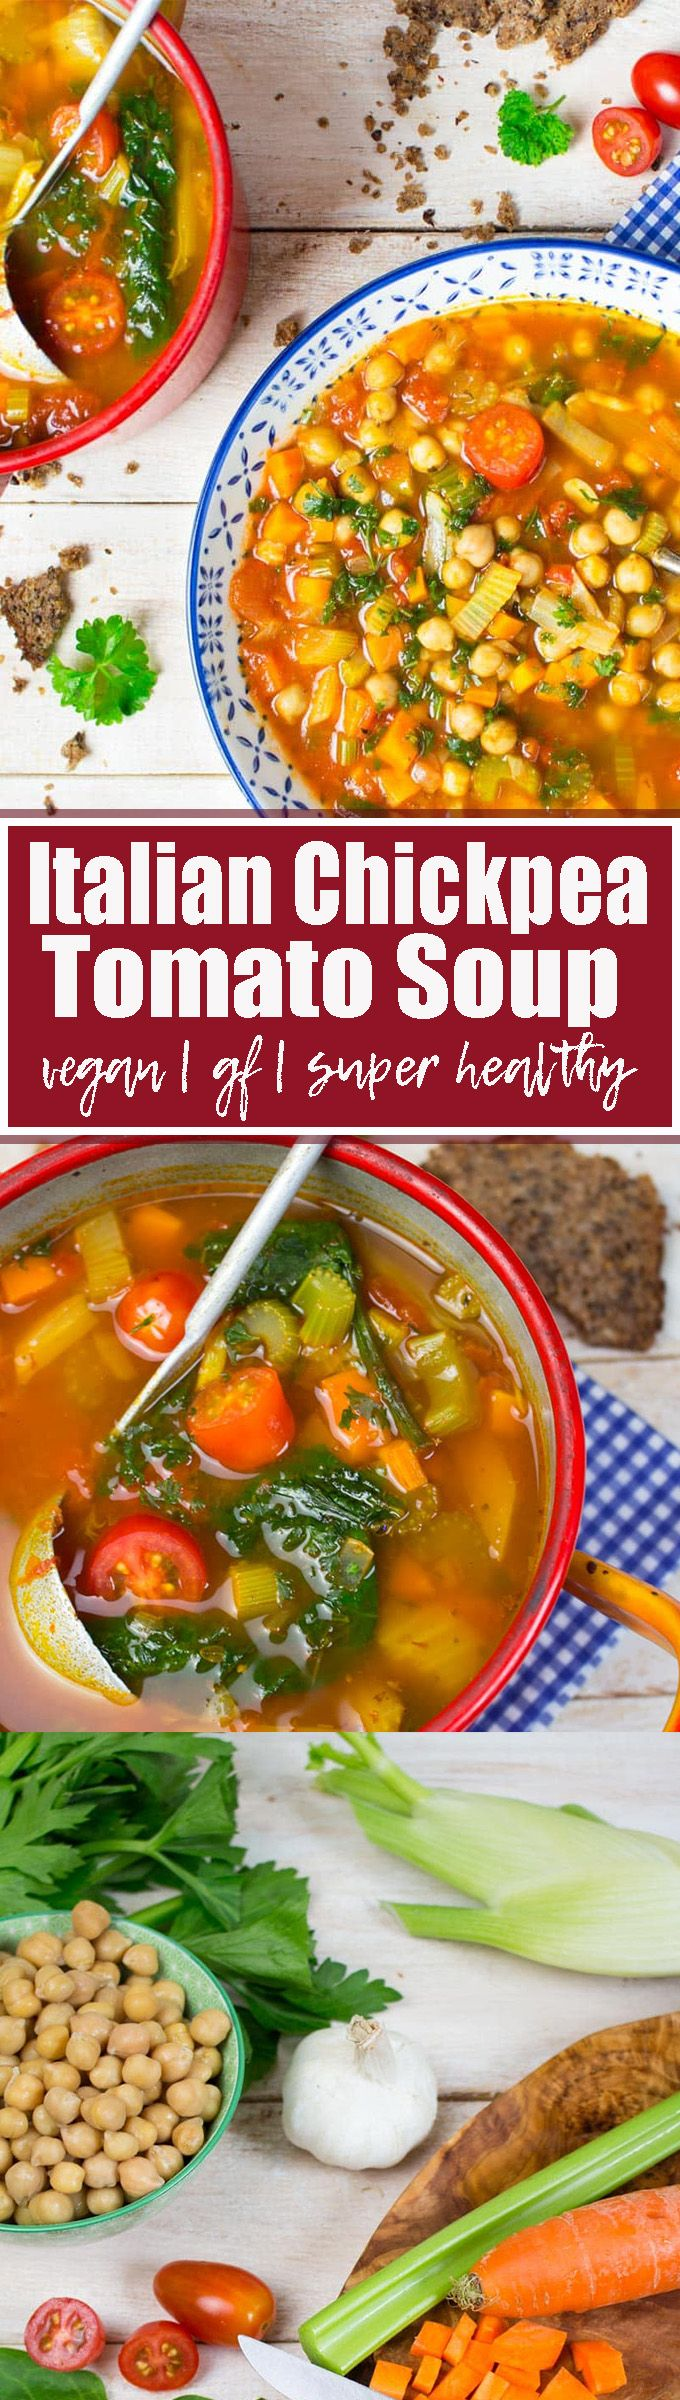 This Italian chickpea soup with tomatoes and spinach makes such a great vegan dinner! This vegan soup is incredibly, healthy, packed with protein, and so comforting! One of my favorite vegetarian recipes for fall!